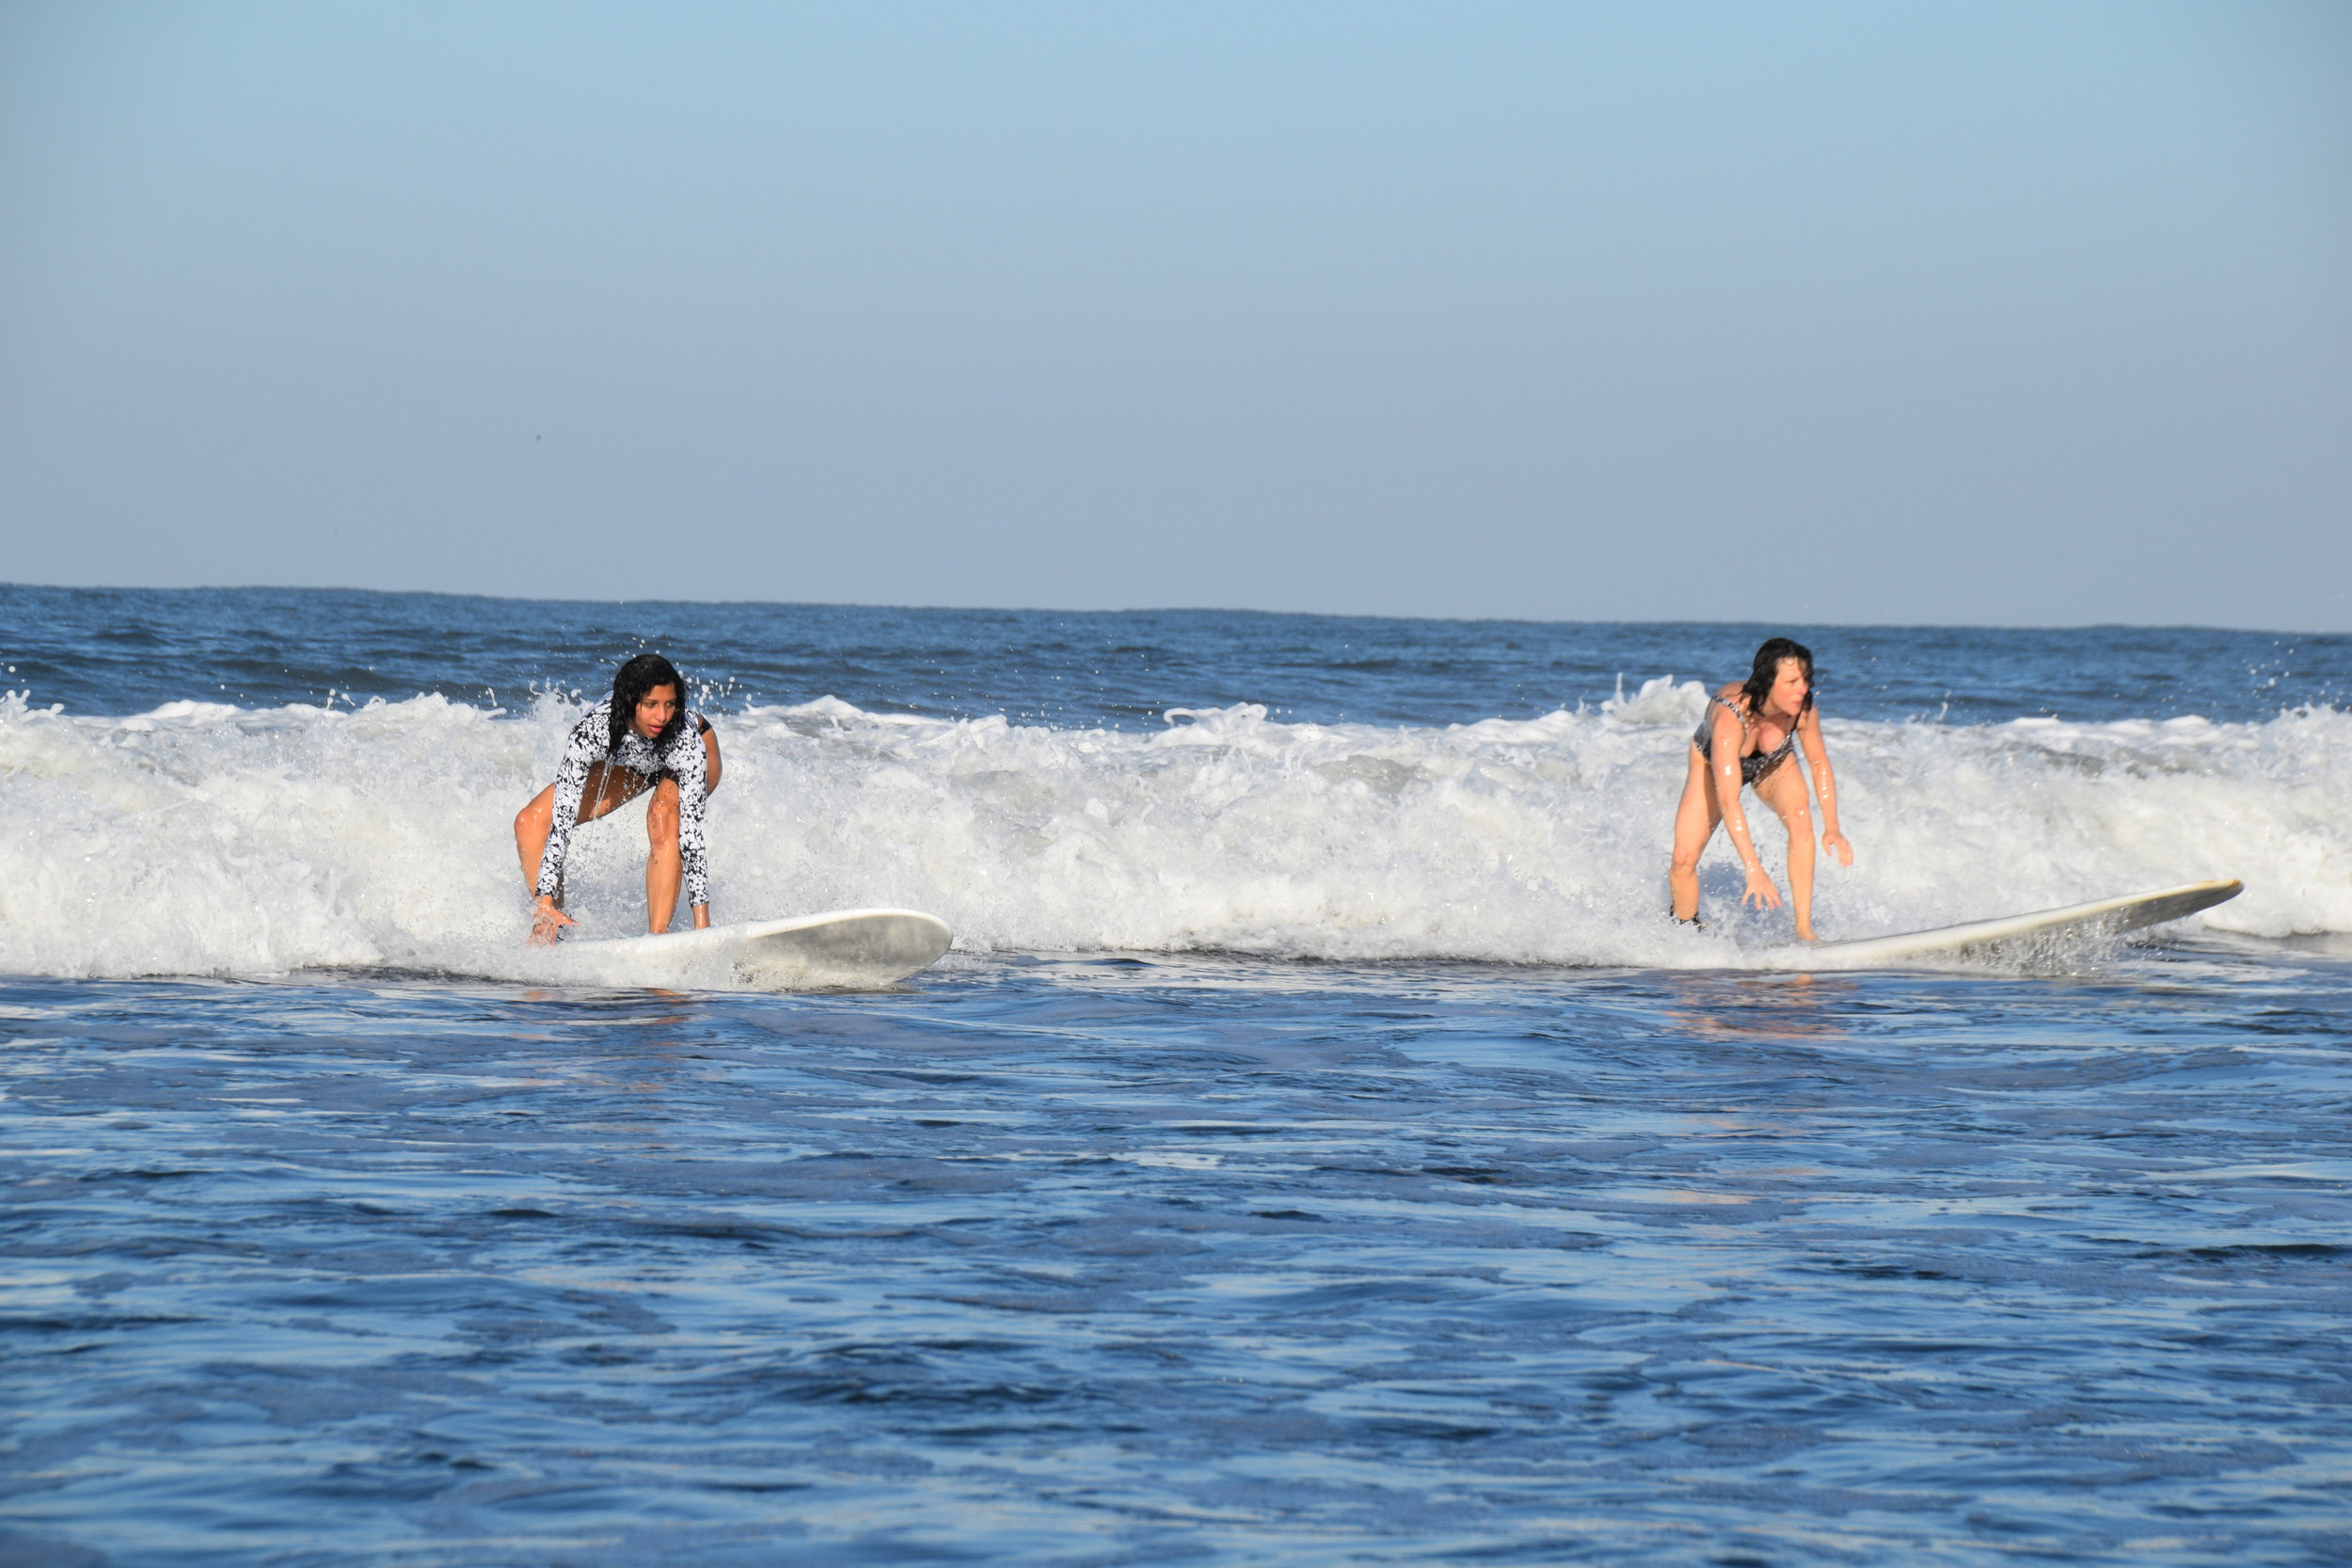 Francesca and Annie surf